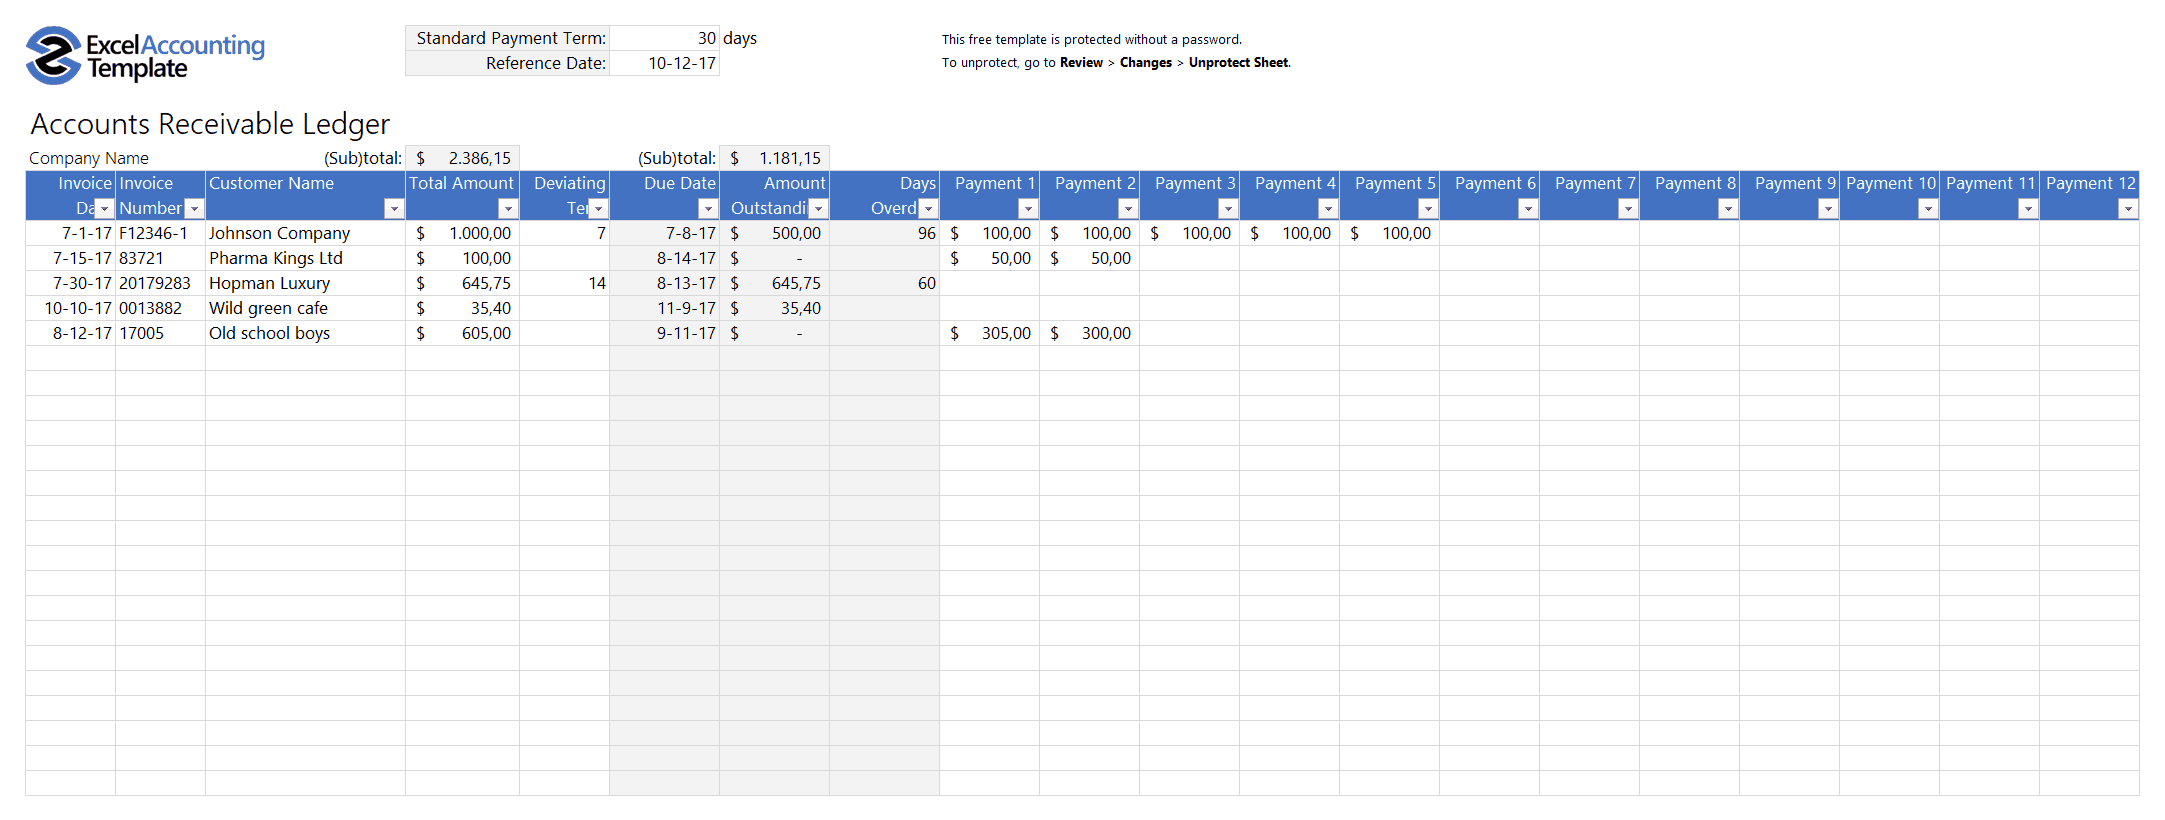 Accounts Payable Spreadsheet Template Free Pertaining To Free Accounting Templates In Excel  Download For Your Business